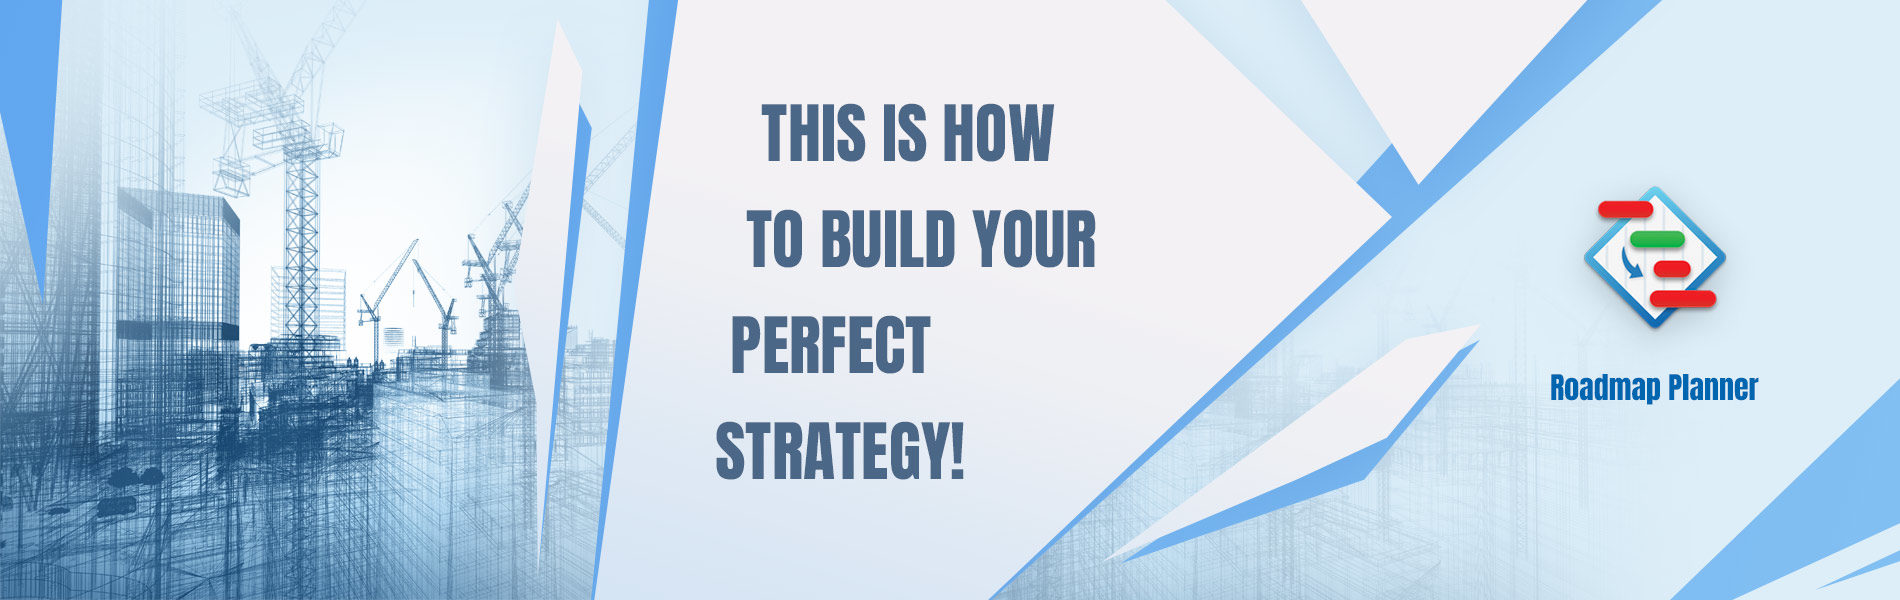 Build your perfect strategy